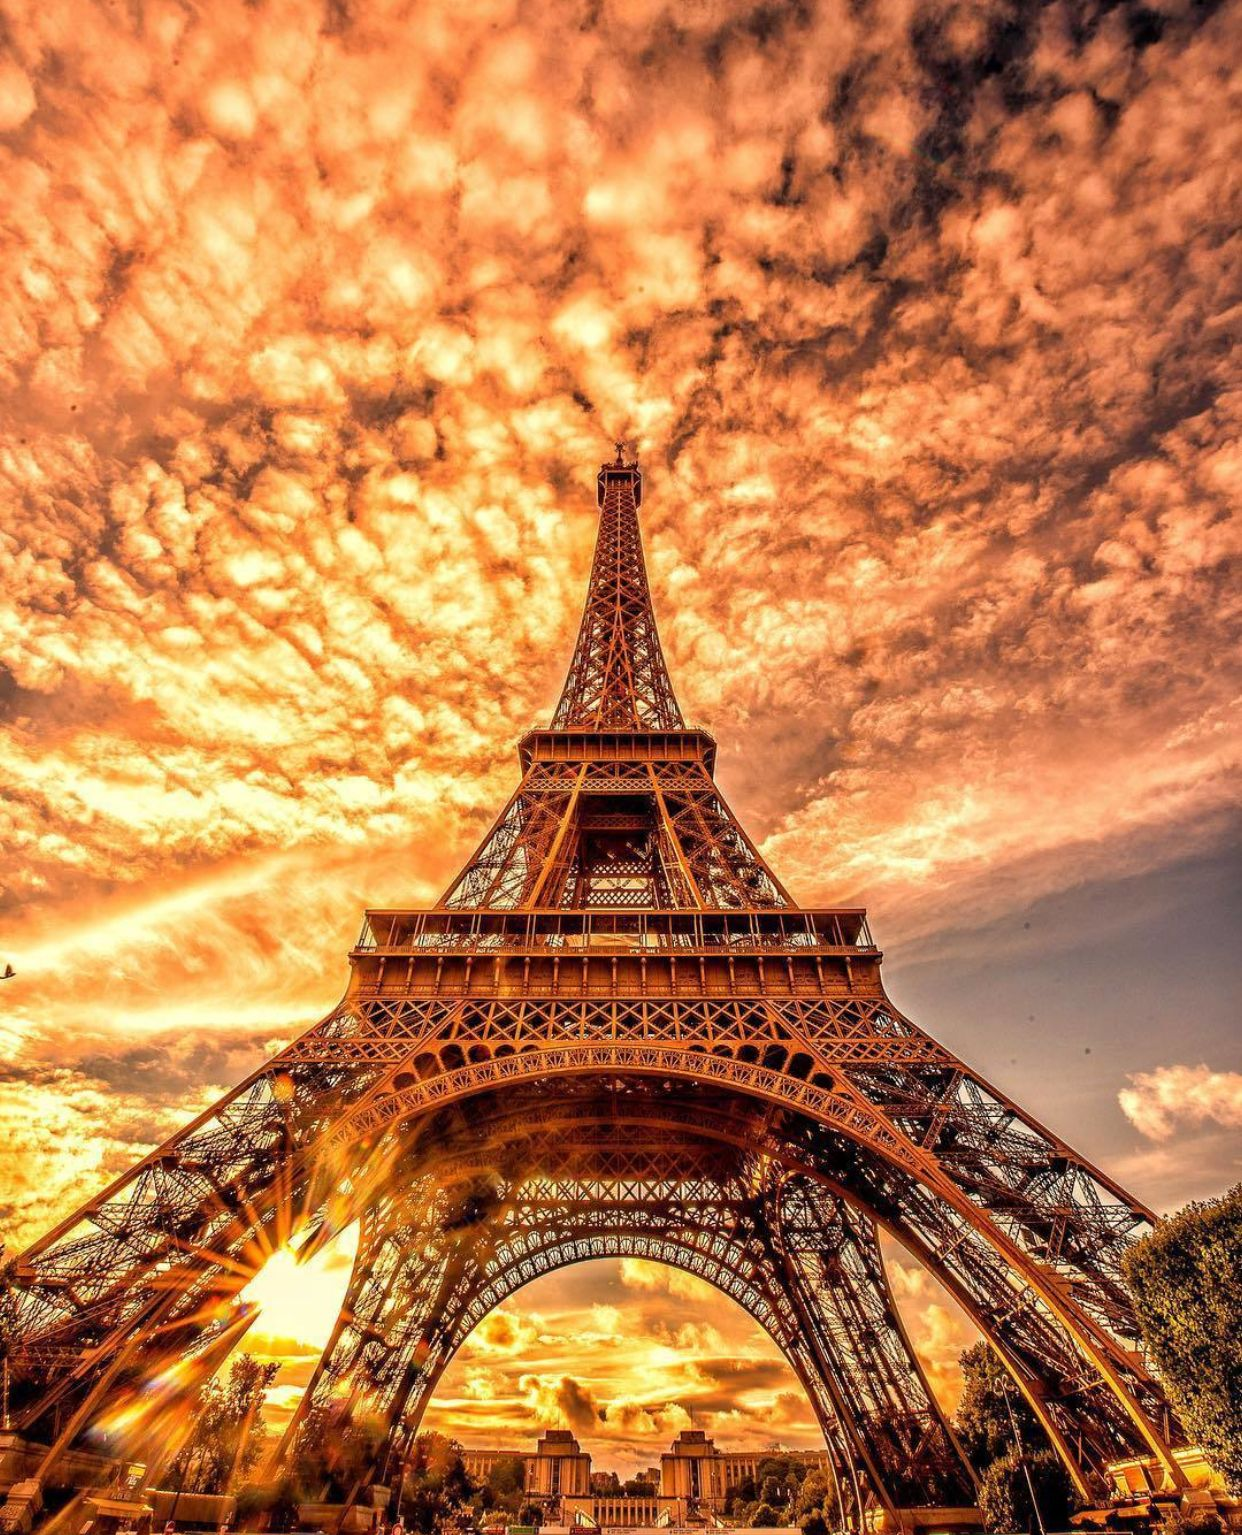 Sunset As Background For The Eiffel Tower Paris France